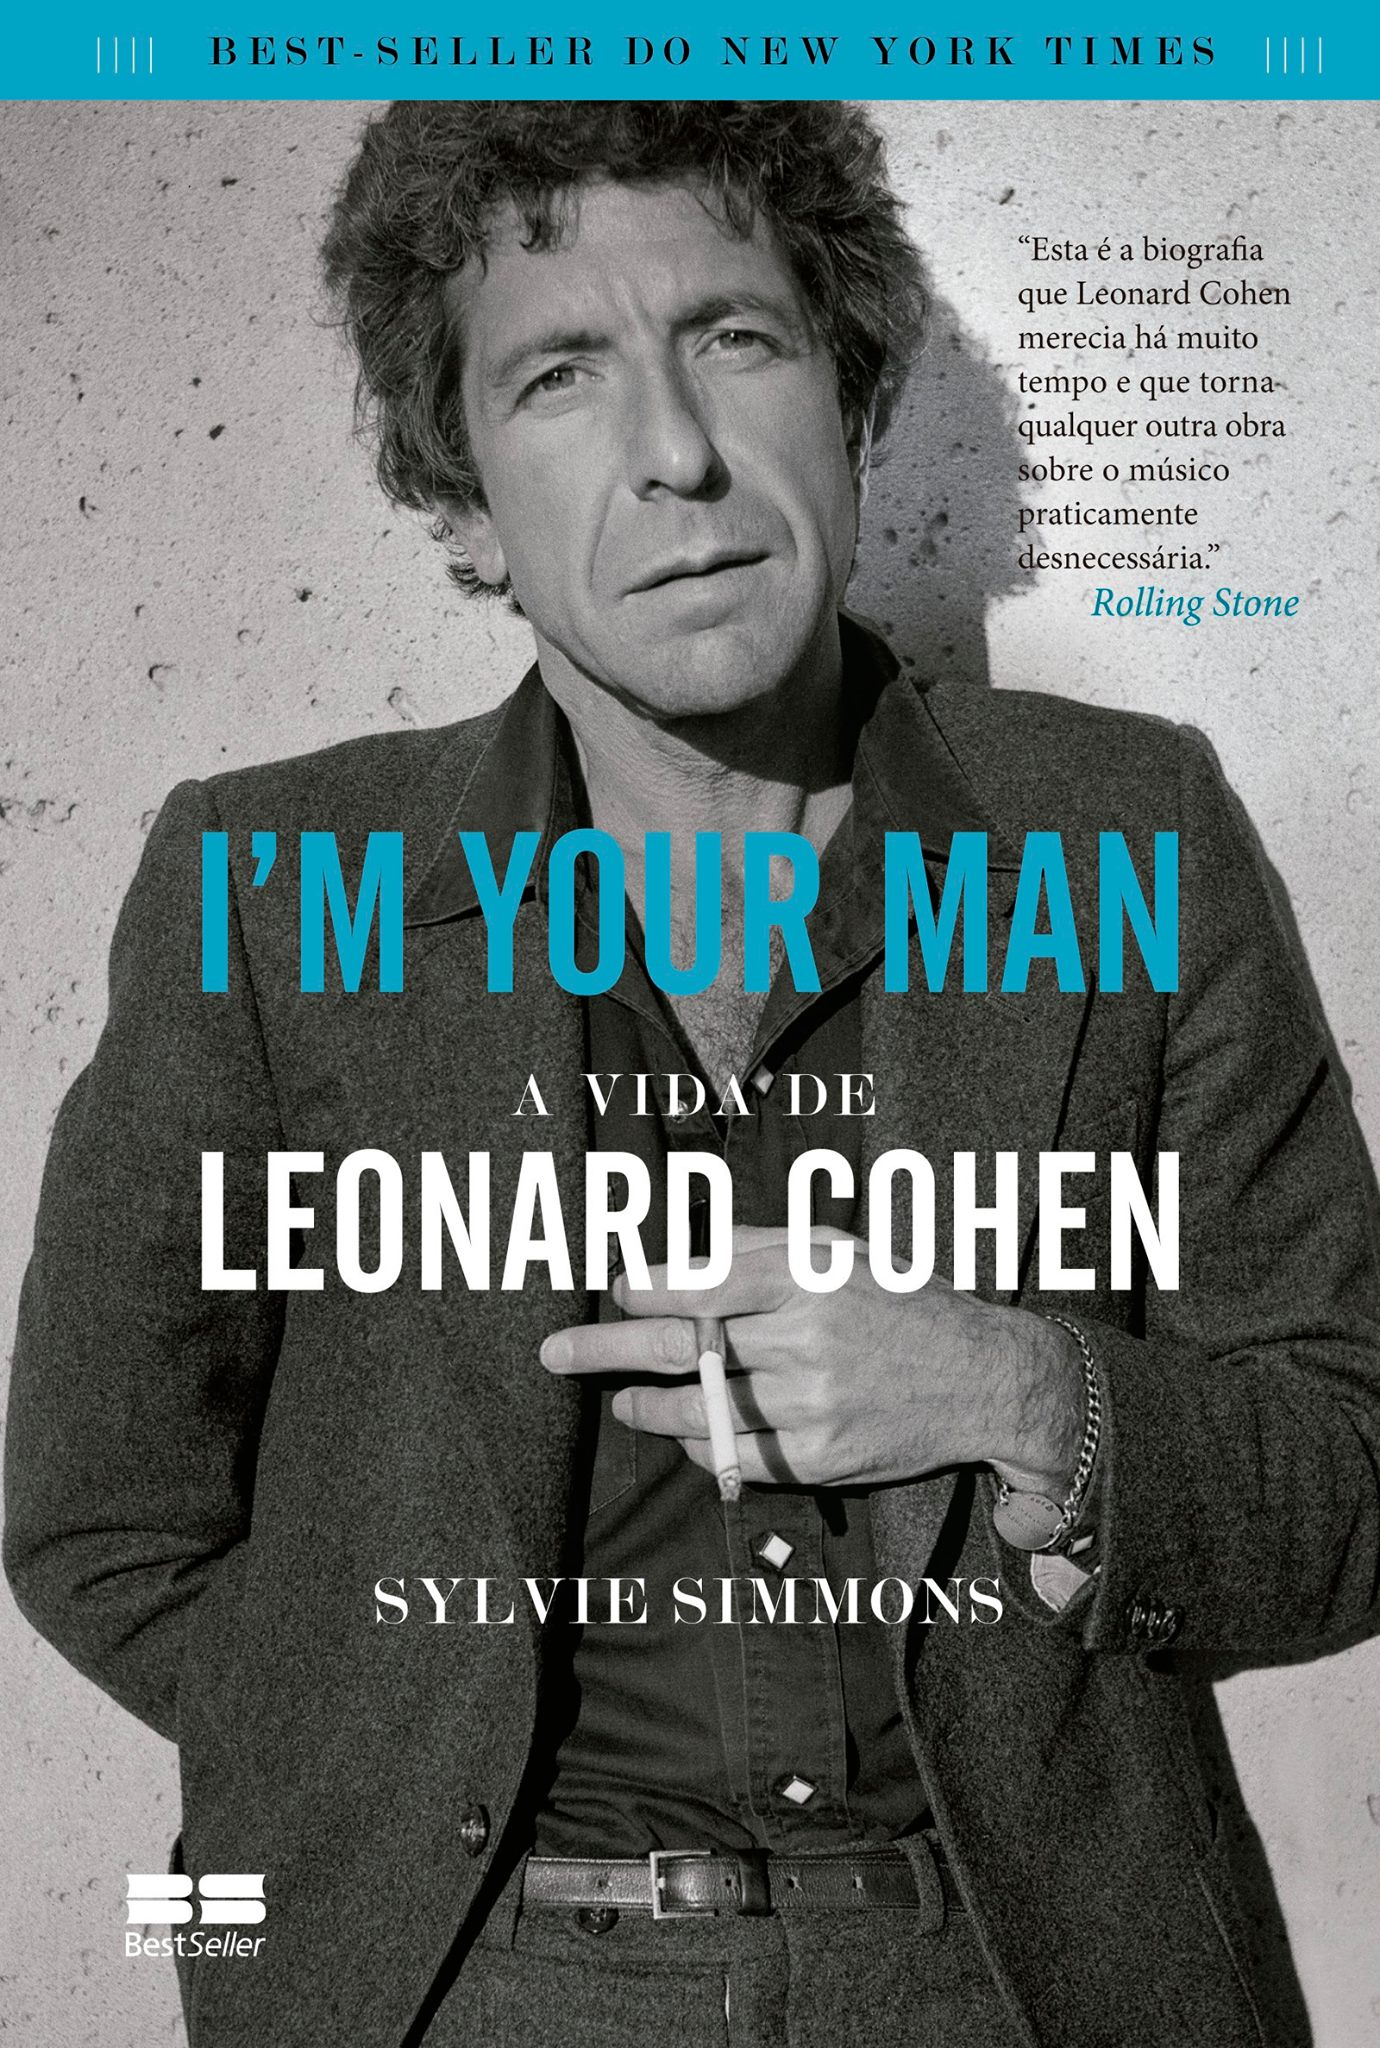 Stereo Embers Talks To Sylvie Simmons, Author of I'm Your Man: The Life Of Leonard Cohen